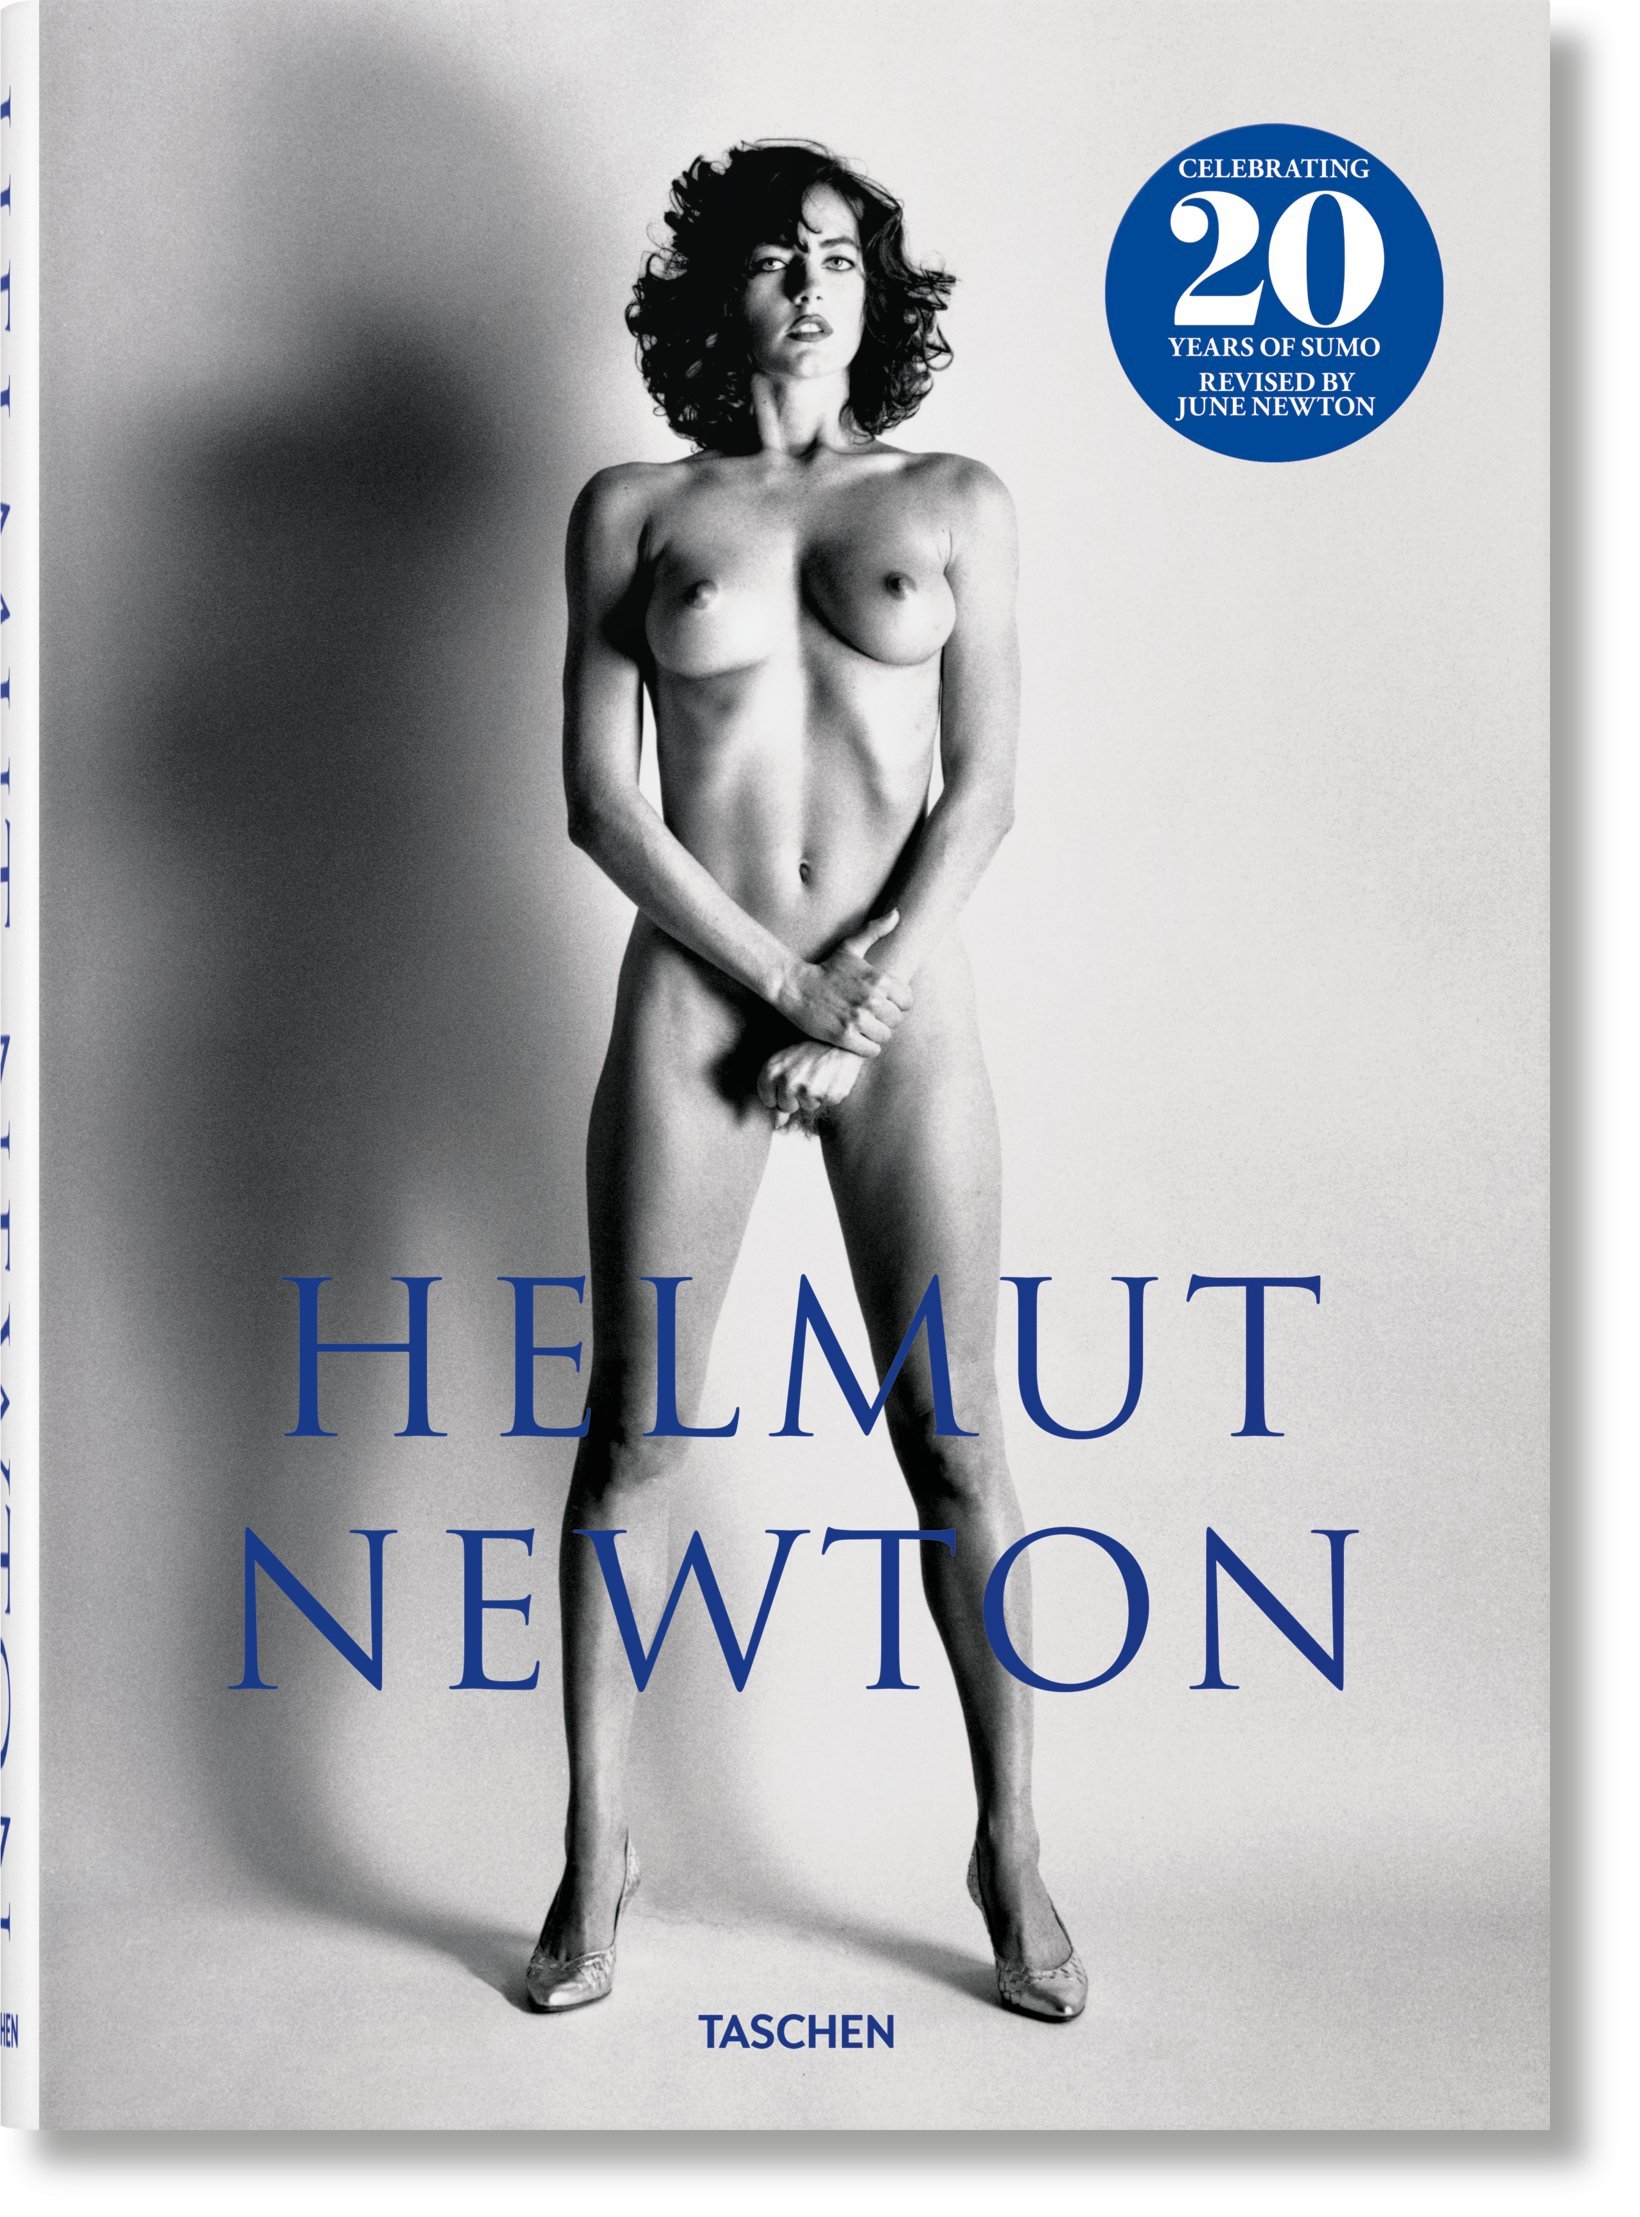 xl-newton_sumo_20th_anniversary-cover_01104.jpg